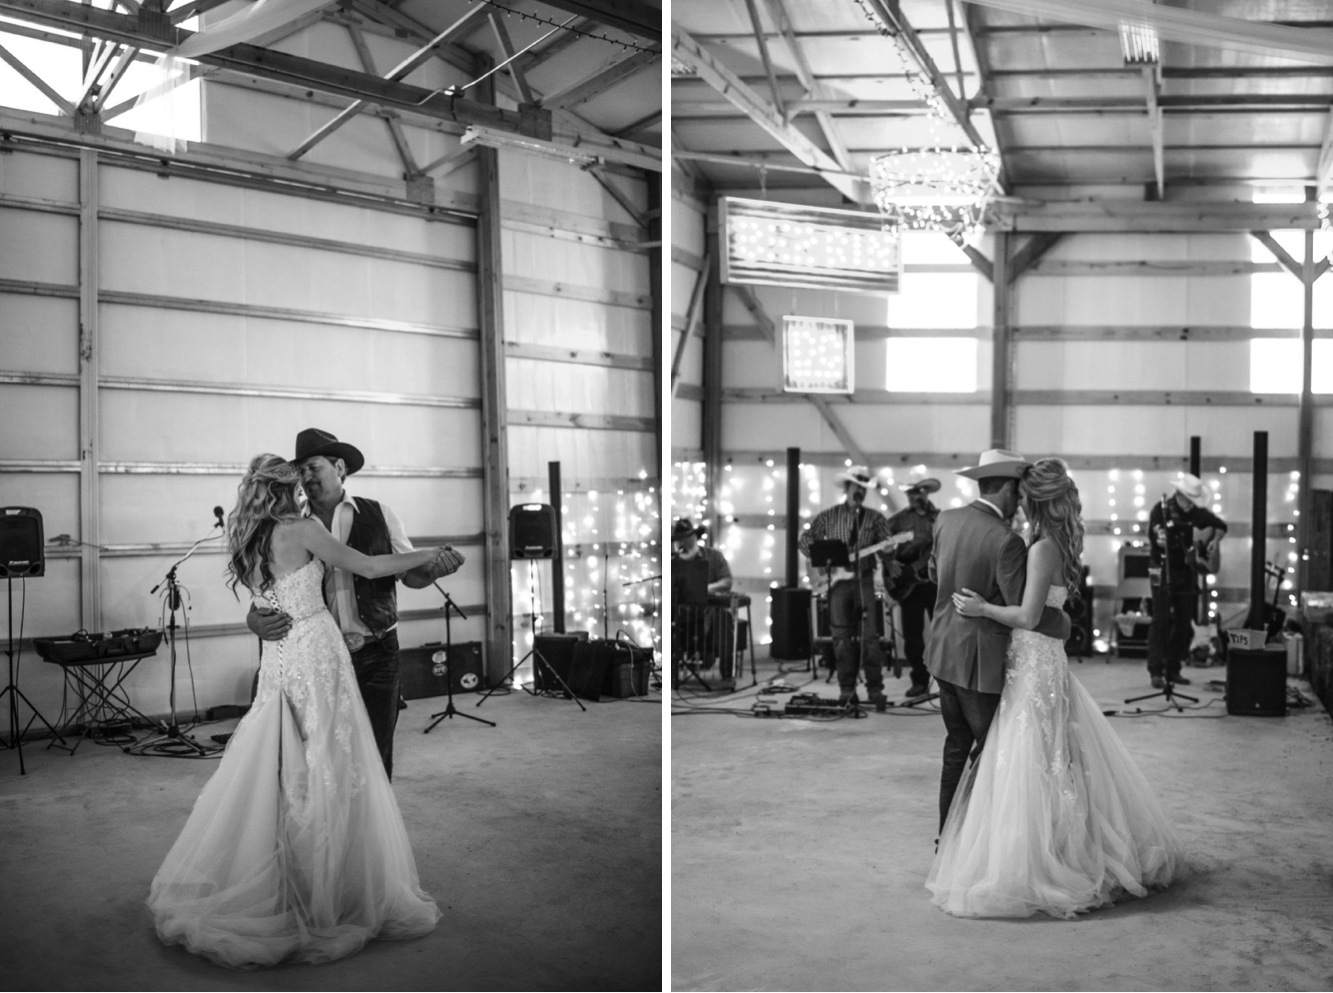 21_Bergin-Wedding-61_Bergin-Wedding-60_western,_wedding,.jpg